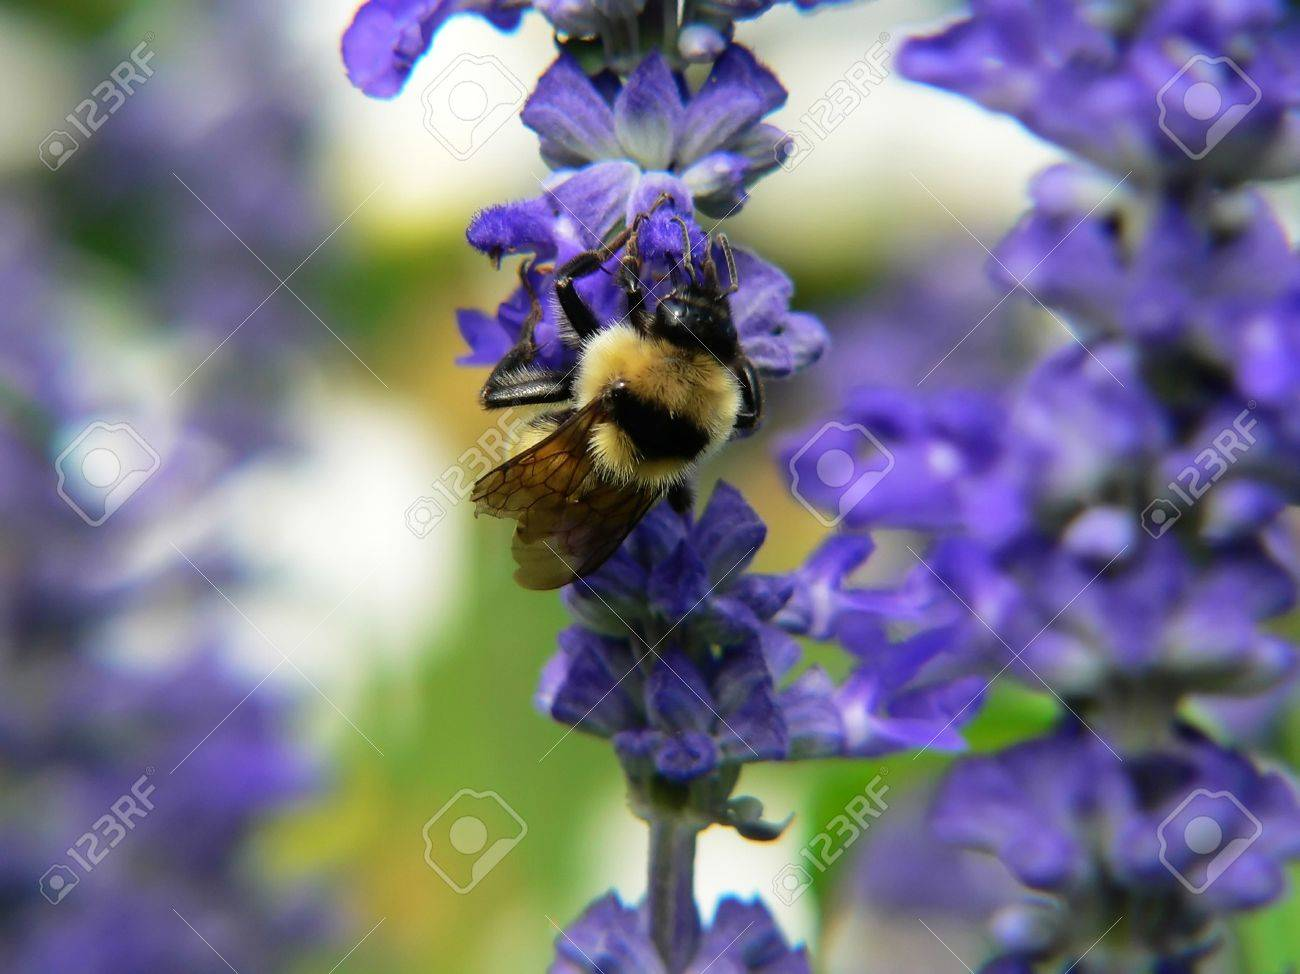 Bumble Bee On Purple Flower Stock Photo Picture And Royalty Free